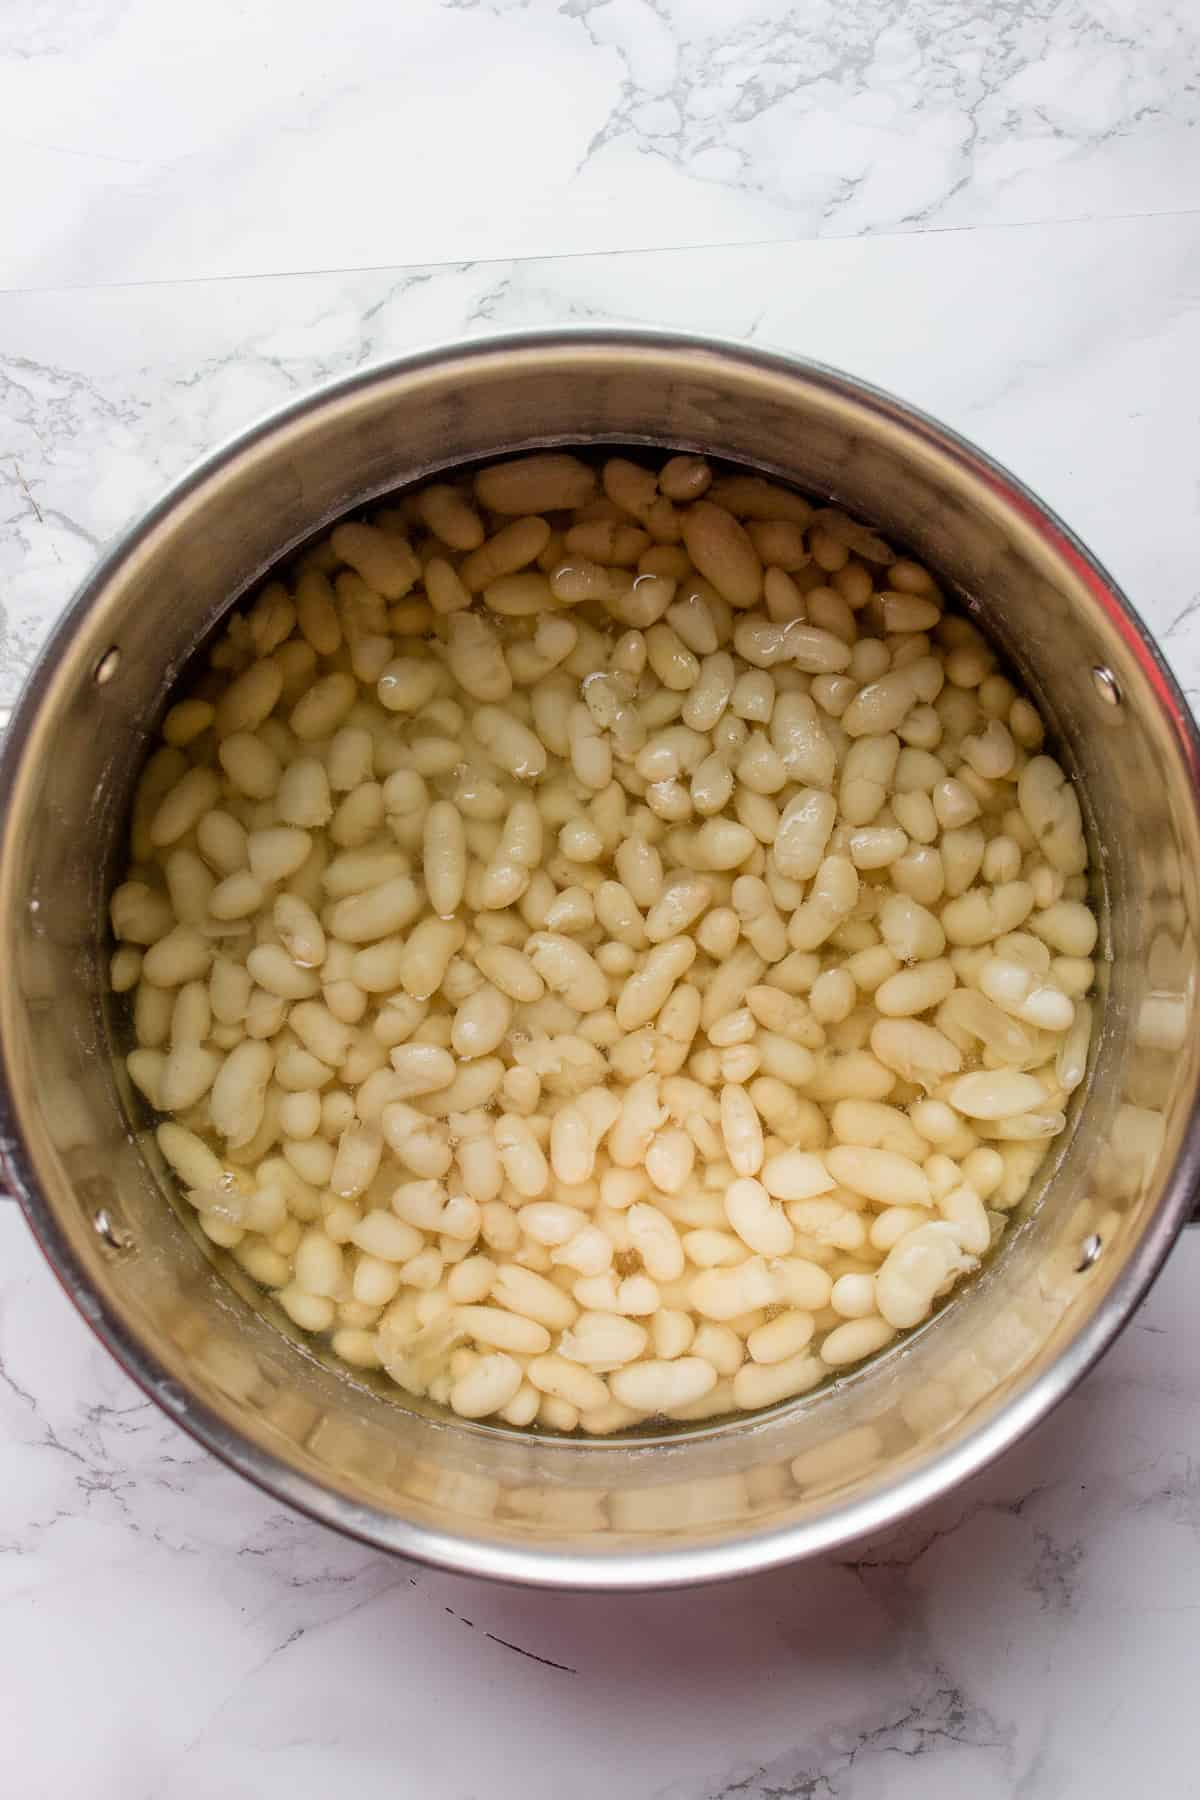 A pot filled with cooked white beans on a white background